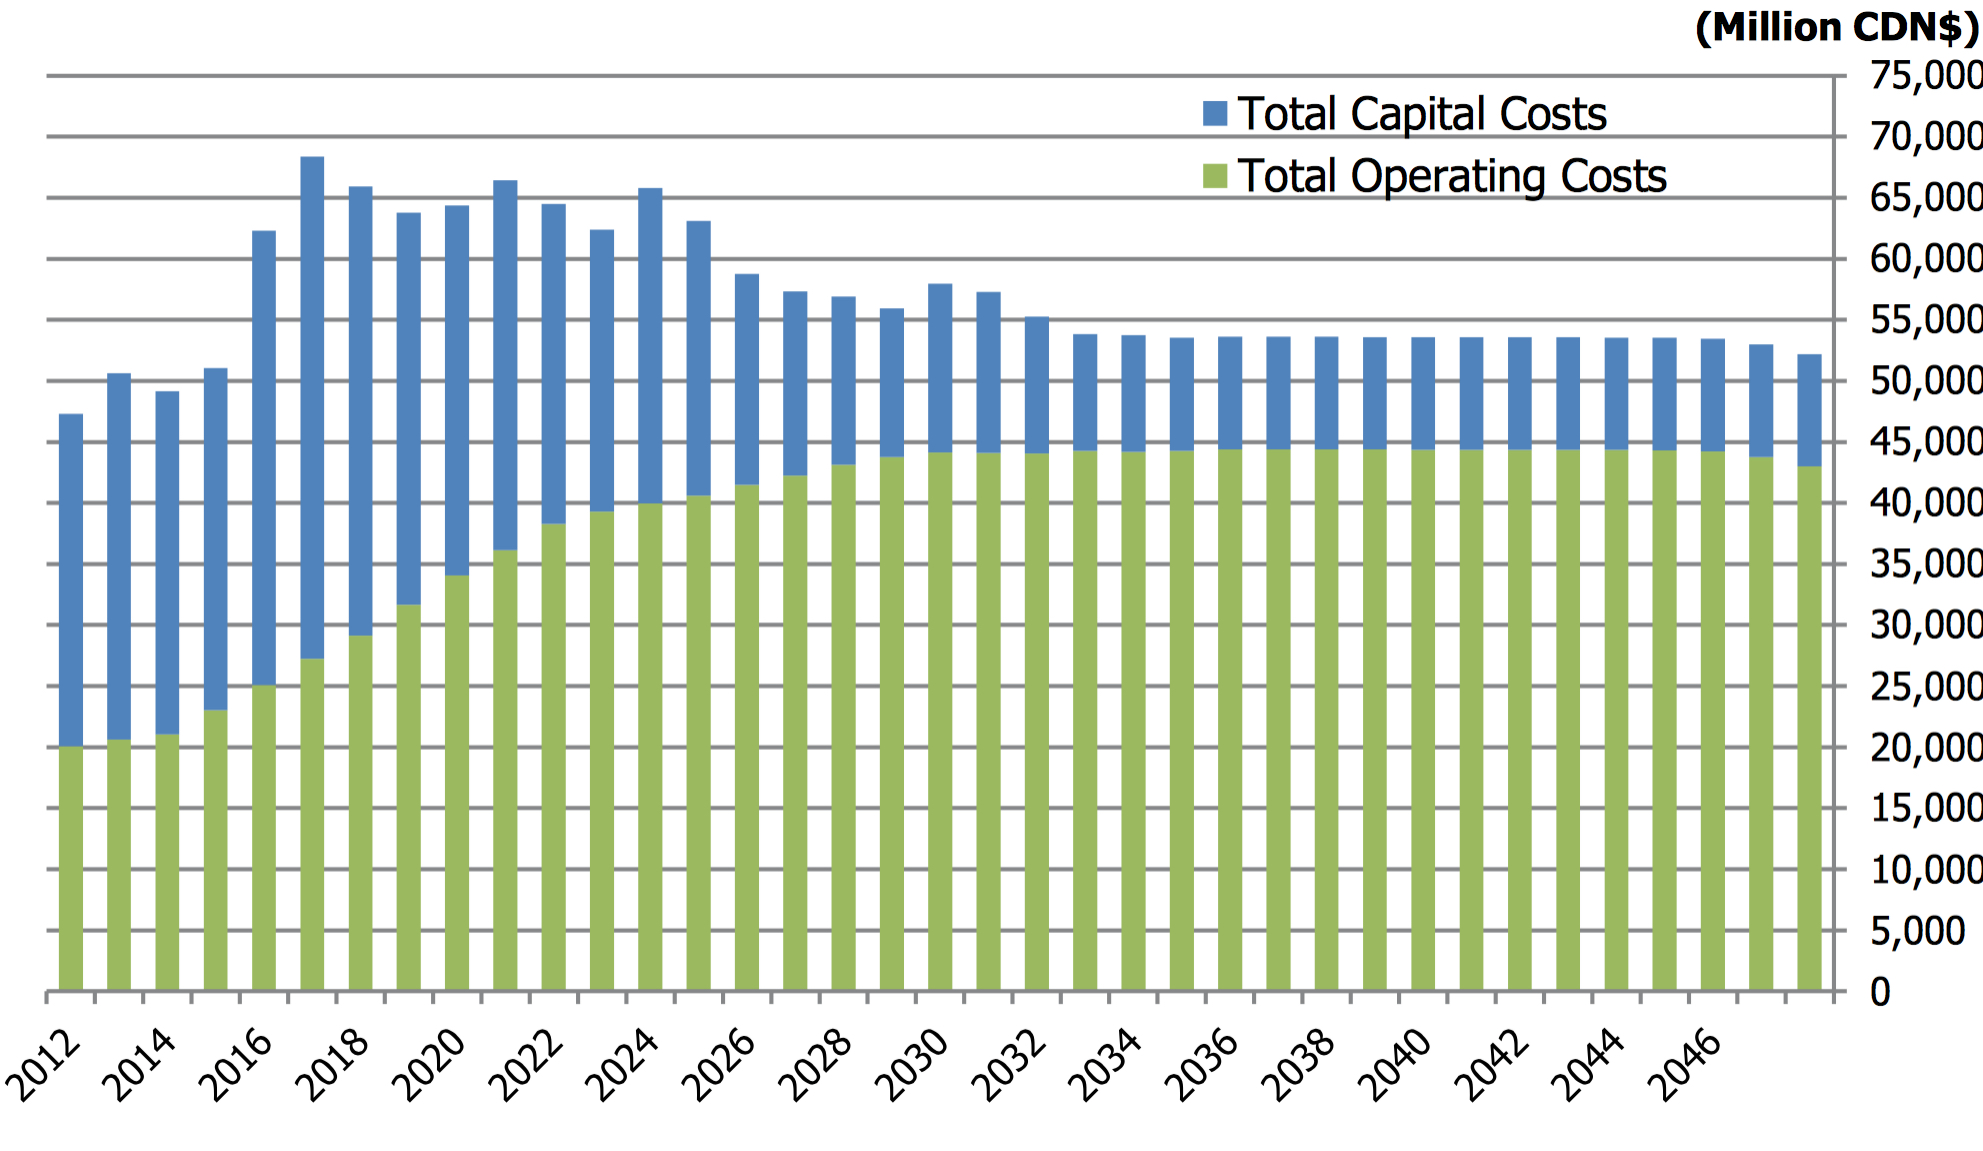 TOTAL EXPENDITURES BY THE OIL SANDS - CAPITAL AND OPERATING EXPENSSES